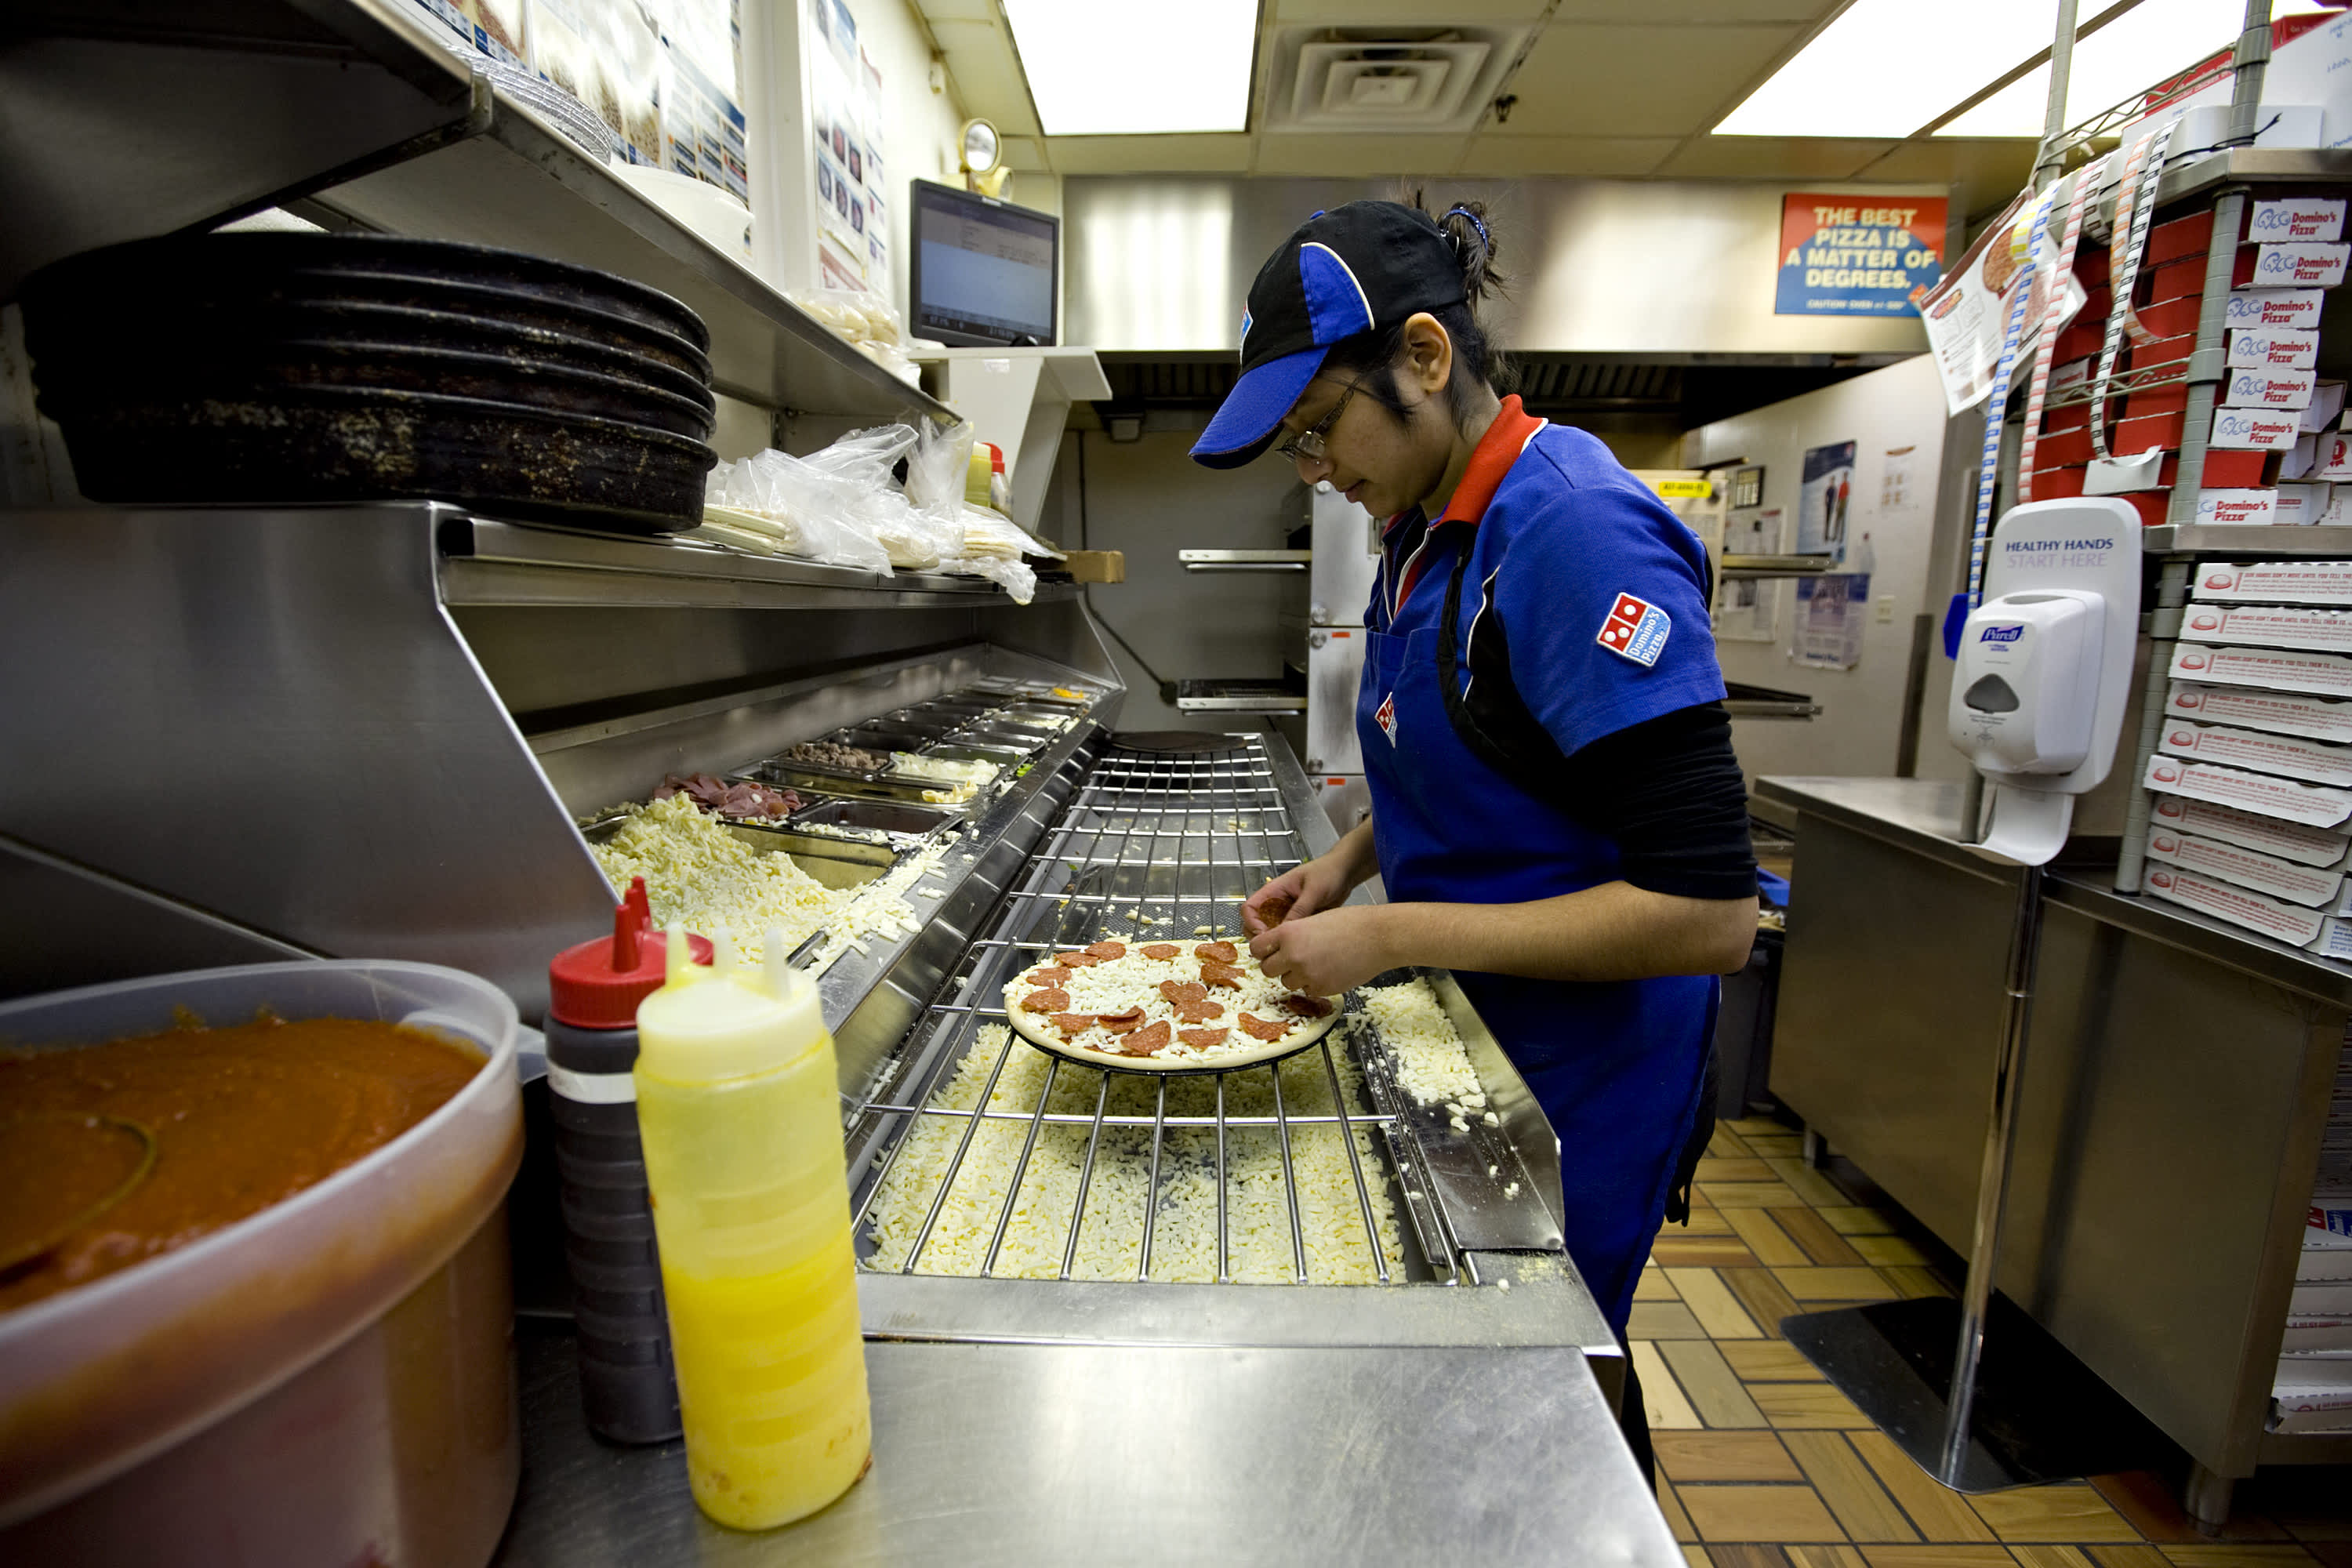 Supreme Court hands victory to blind man who sued Domino's over site accessibility